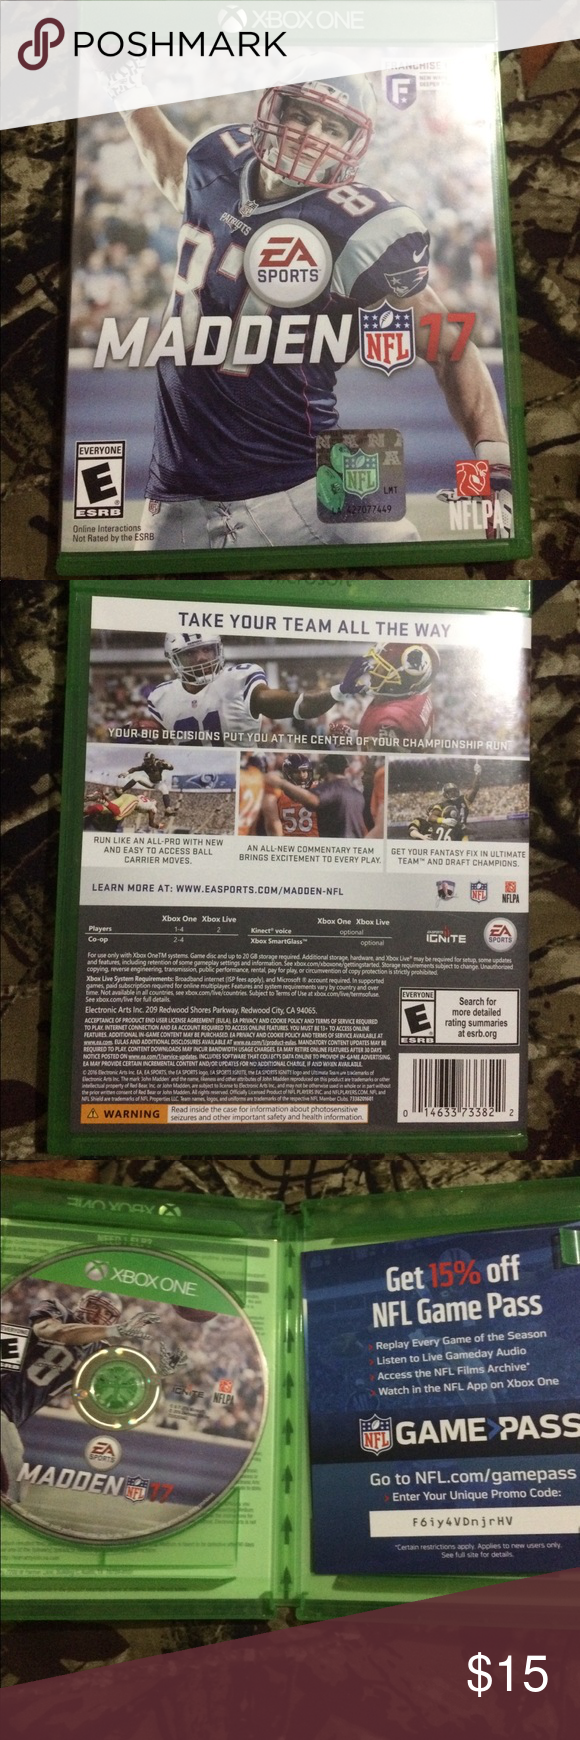 Madden 17 for Xbox One Game Pass code is still Valid! Works